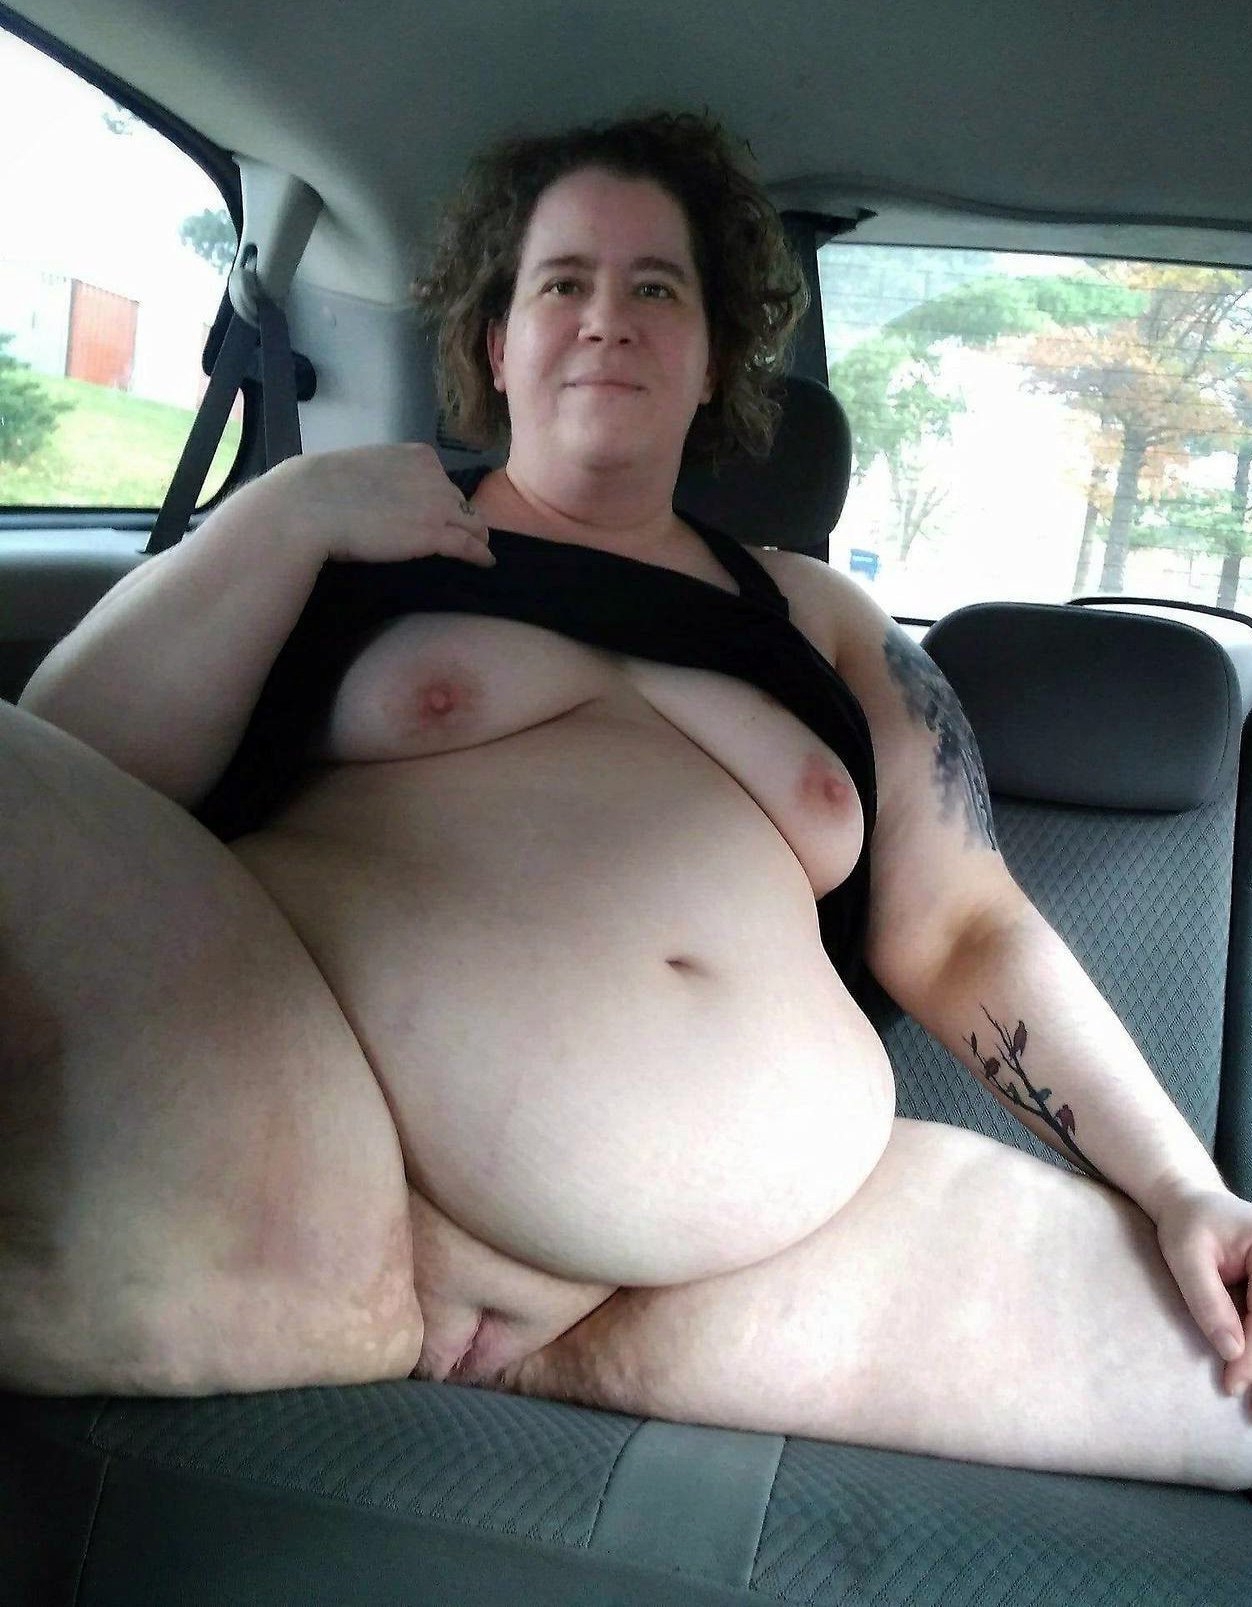 Best pics of huge breasted women